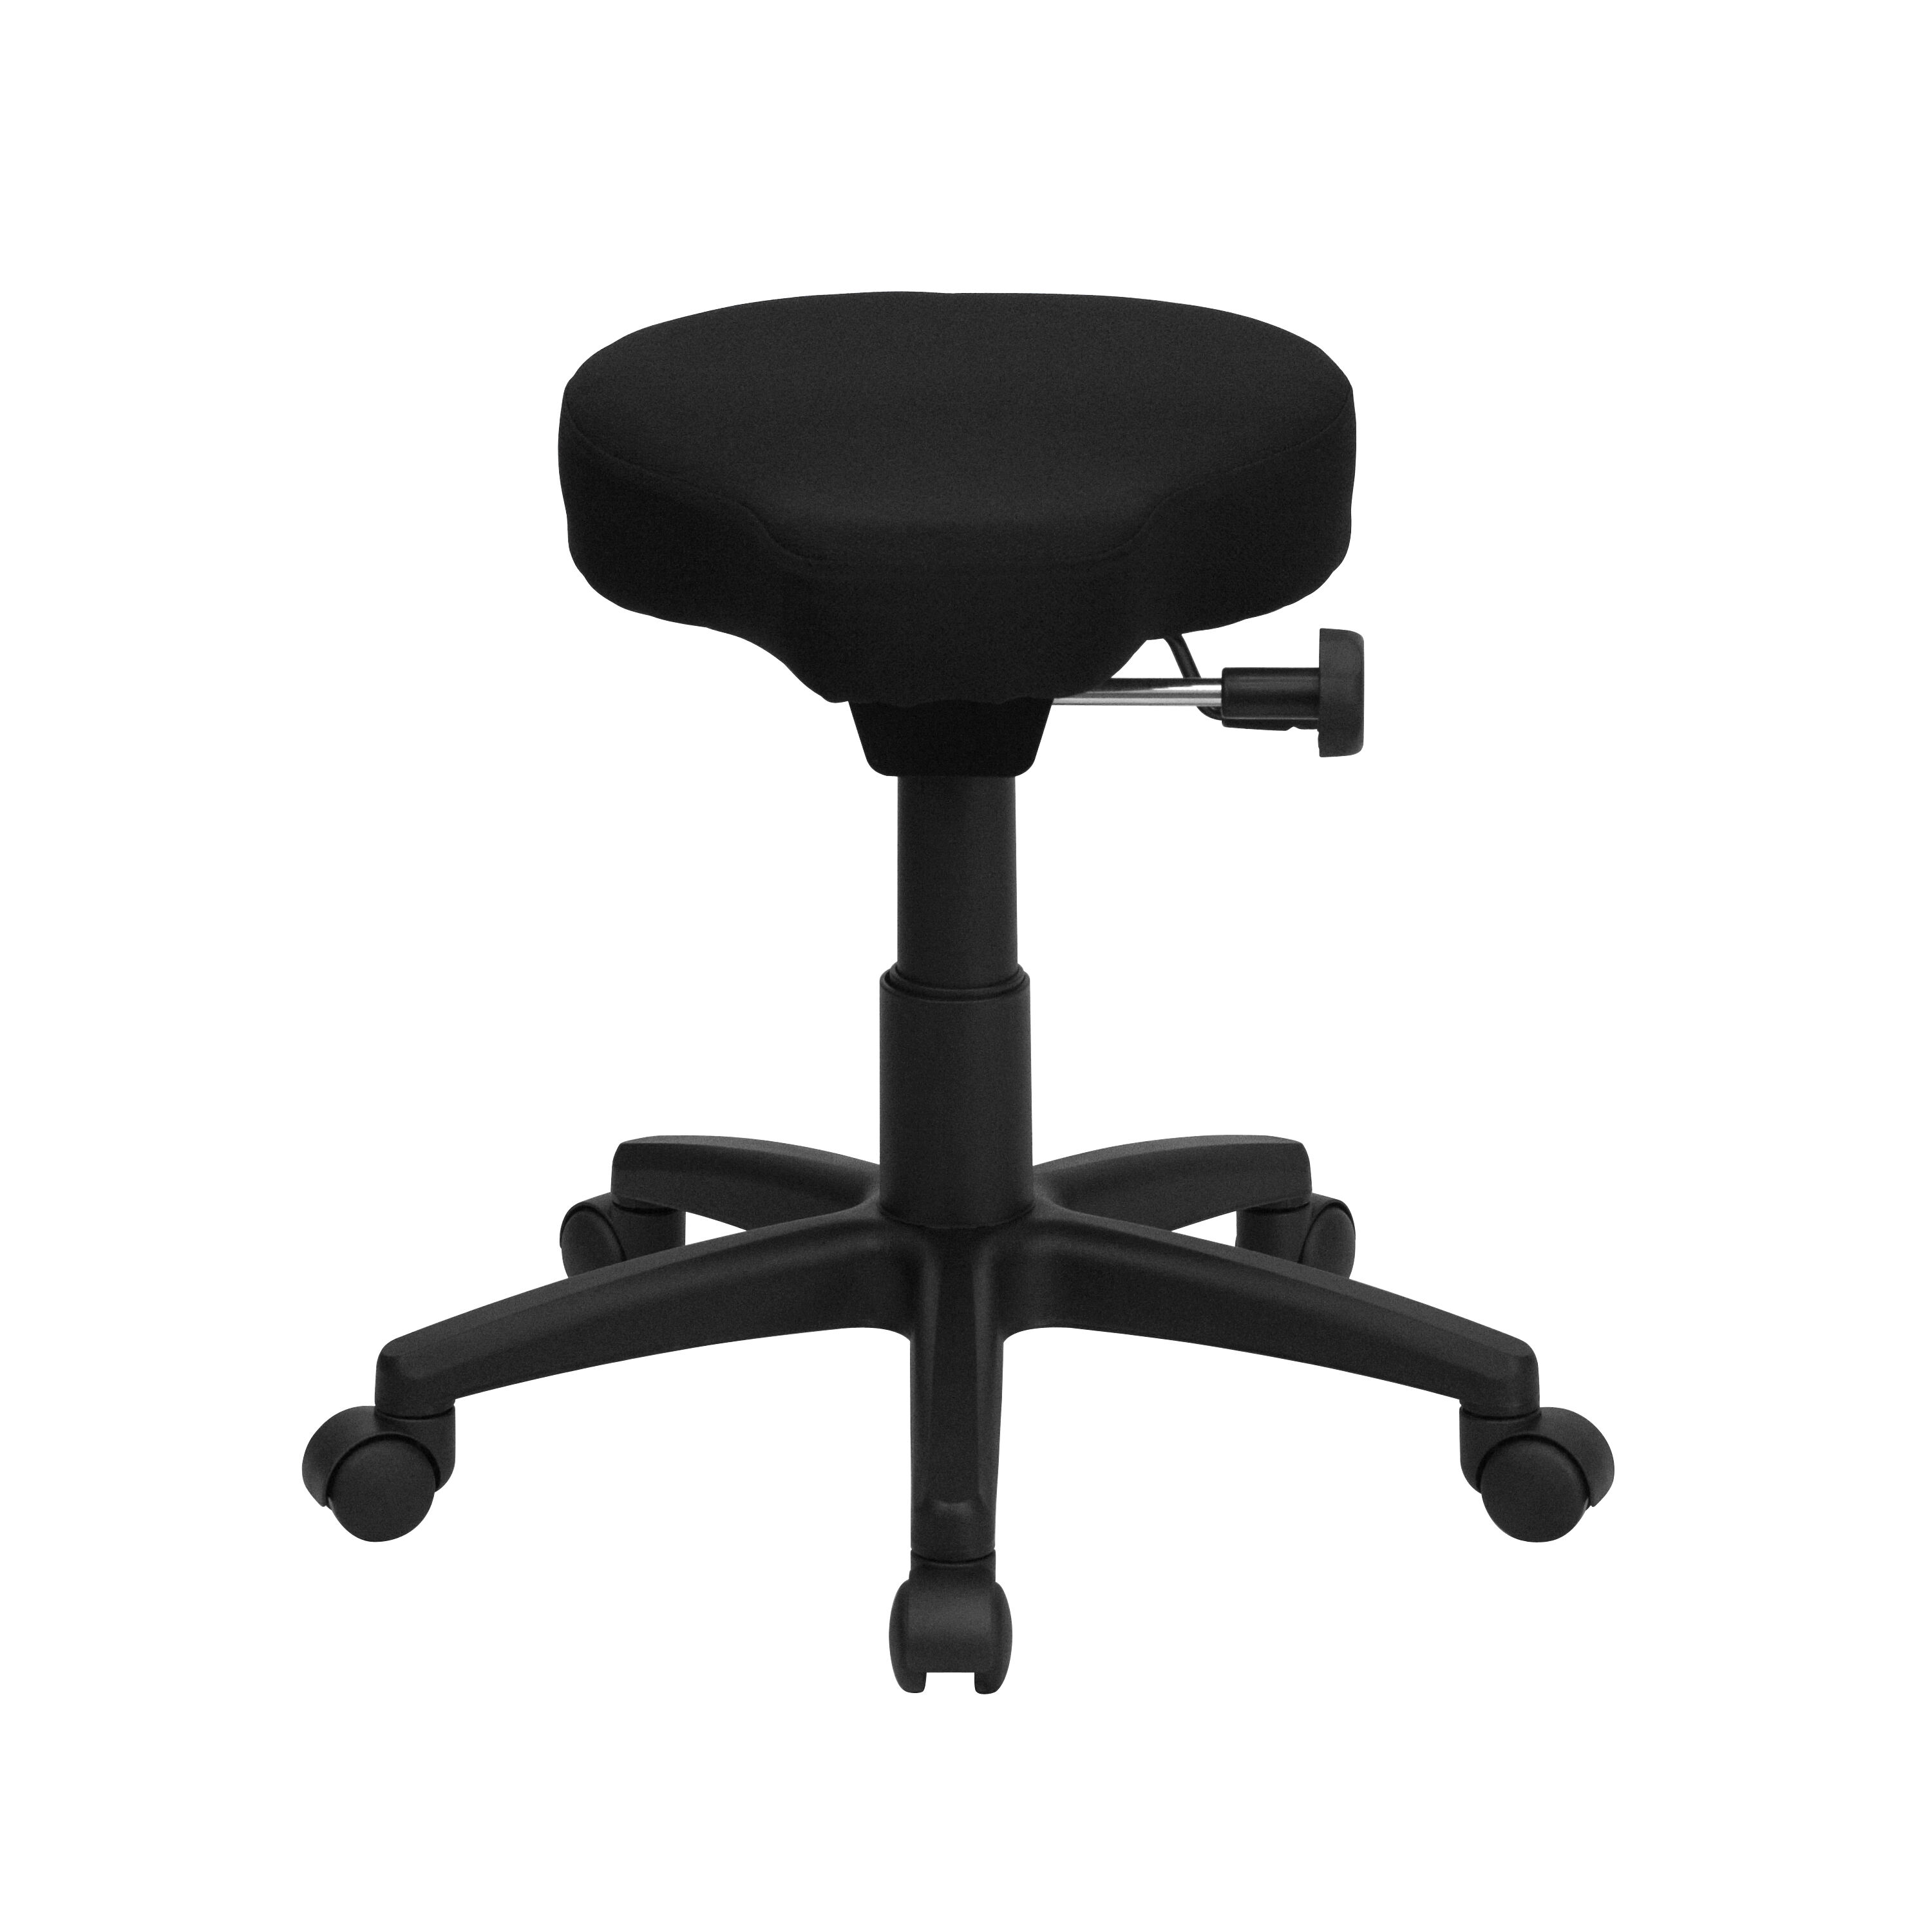 horse saddle office chair step 2 studio art desk with black fabric stool wl 1620 gg bizchair